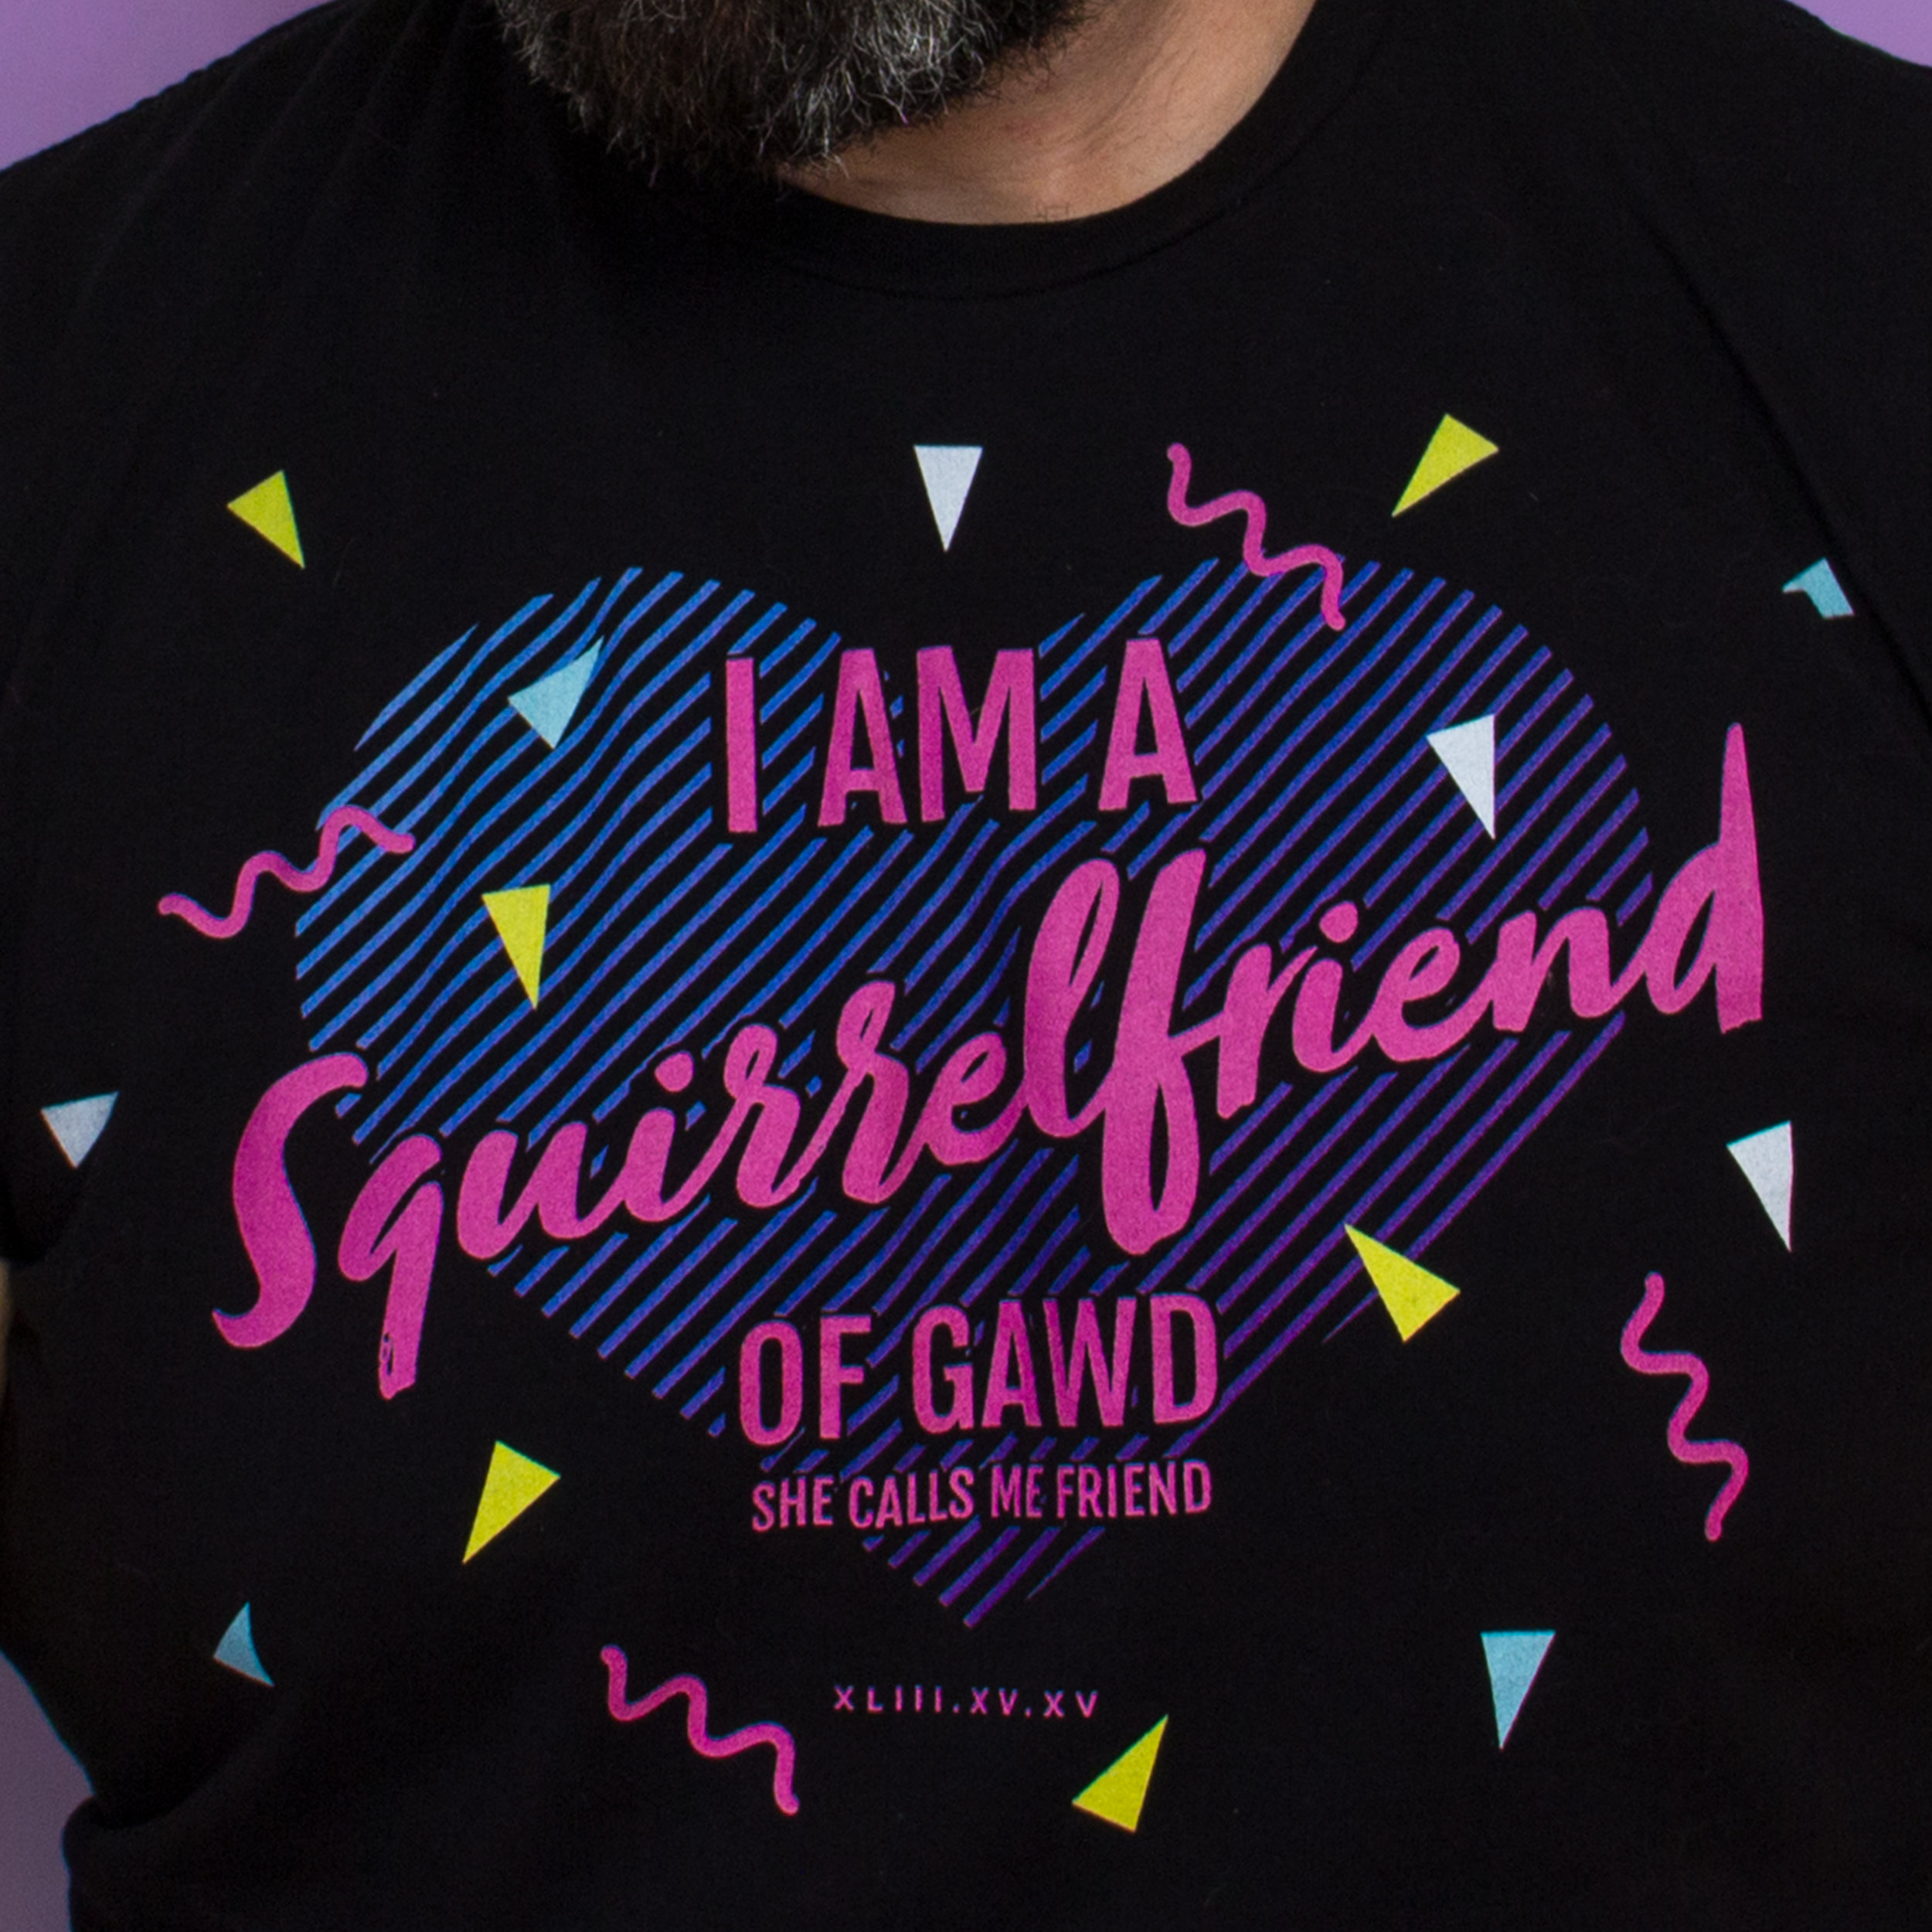 I-am-a-squirrelfriend-of-gawd-god-tshirt-bro-bear-blog-3.jpg